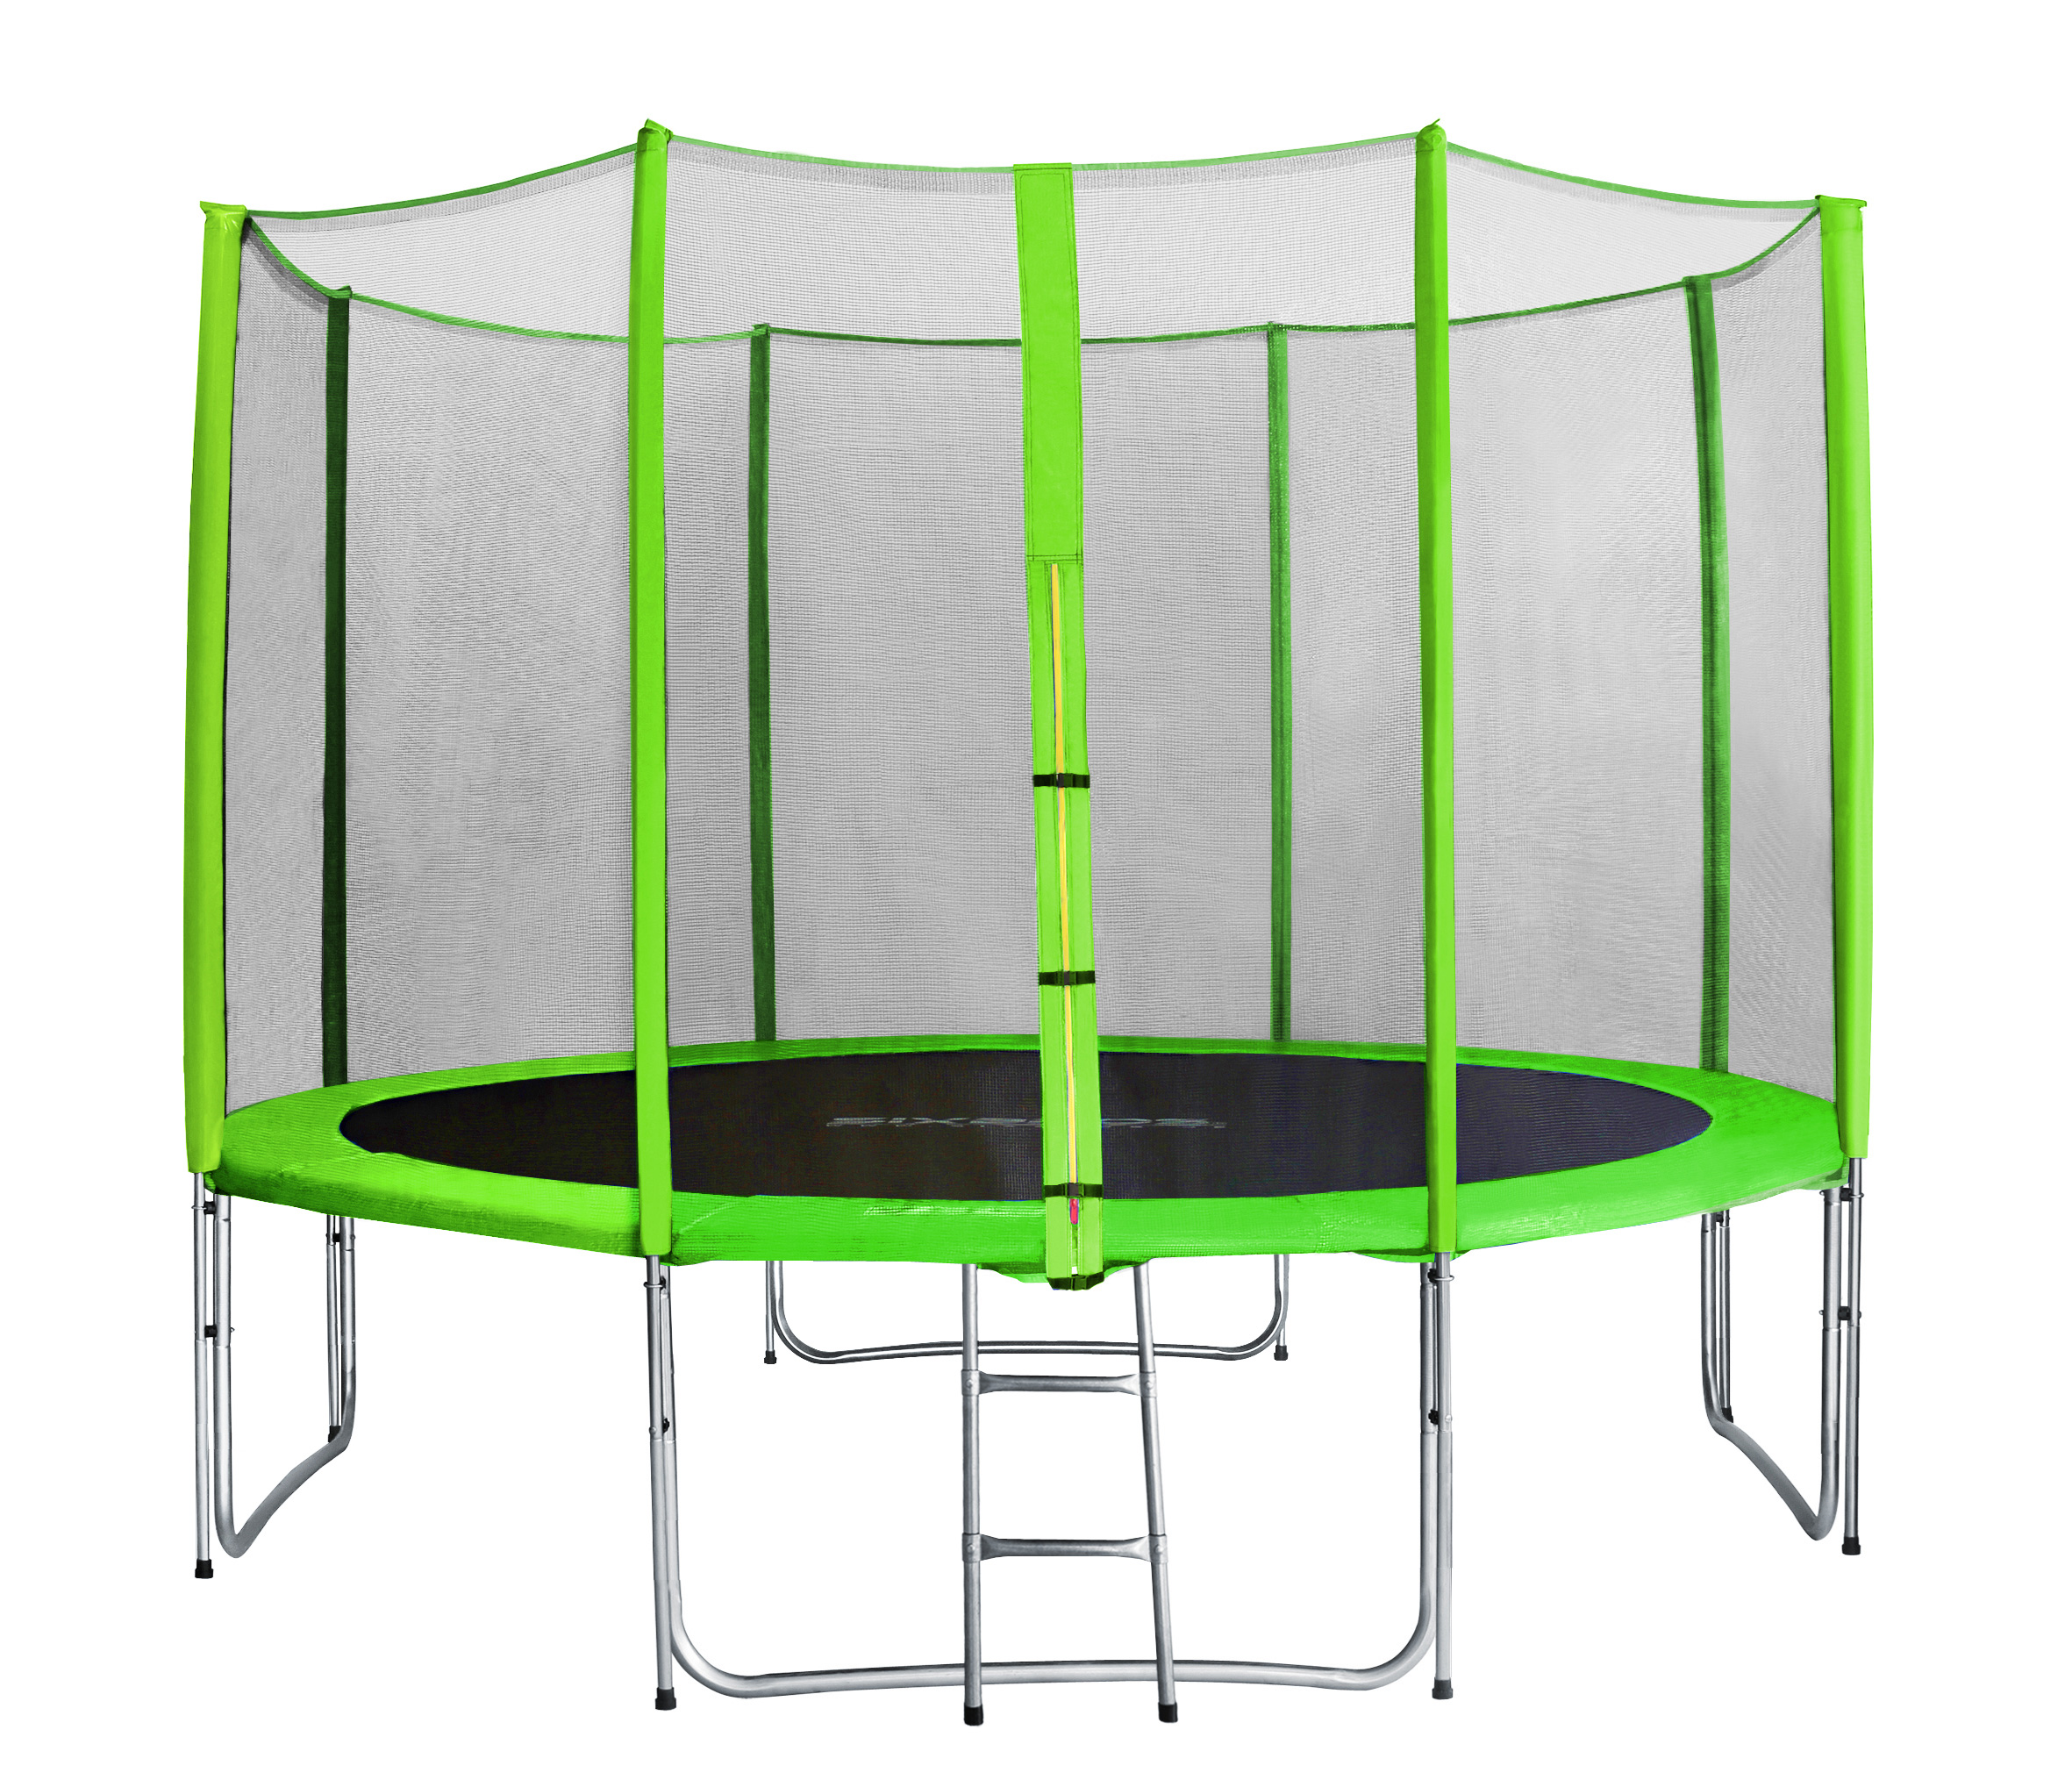 sixbros sixjump trampoline de jardin filet l ext rieur complet 185 460cm ebay. Black Bedroom Furniture Sets. Home Design Ideas